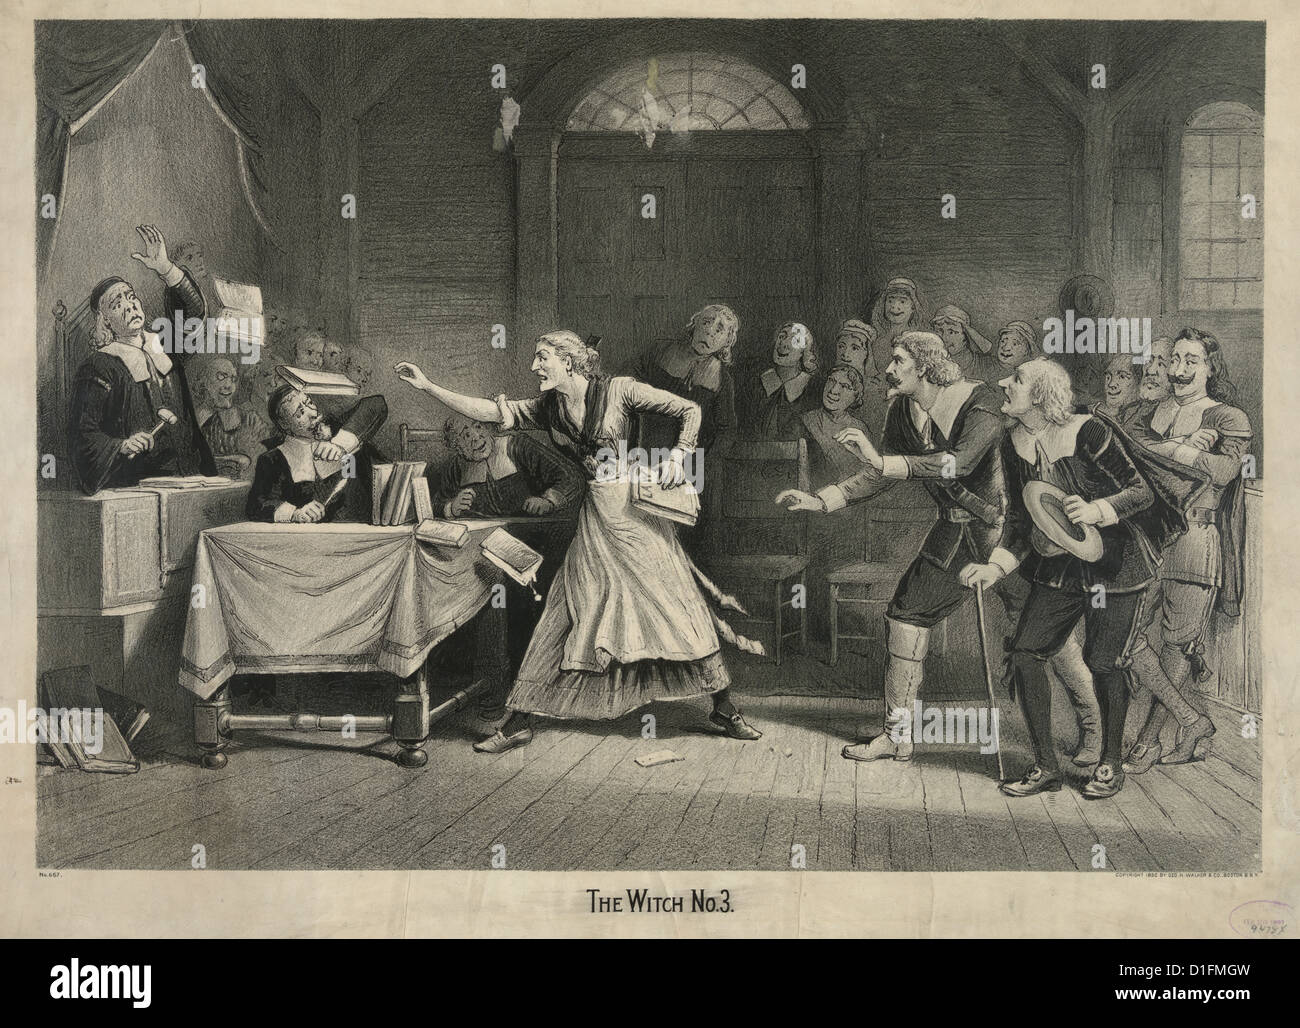 the salem witchcraft trials and the The salem witch trials were a notorious episode in new england colonial  history that led to the execution of 14 women and 6 men, in 1692, for.